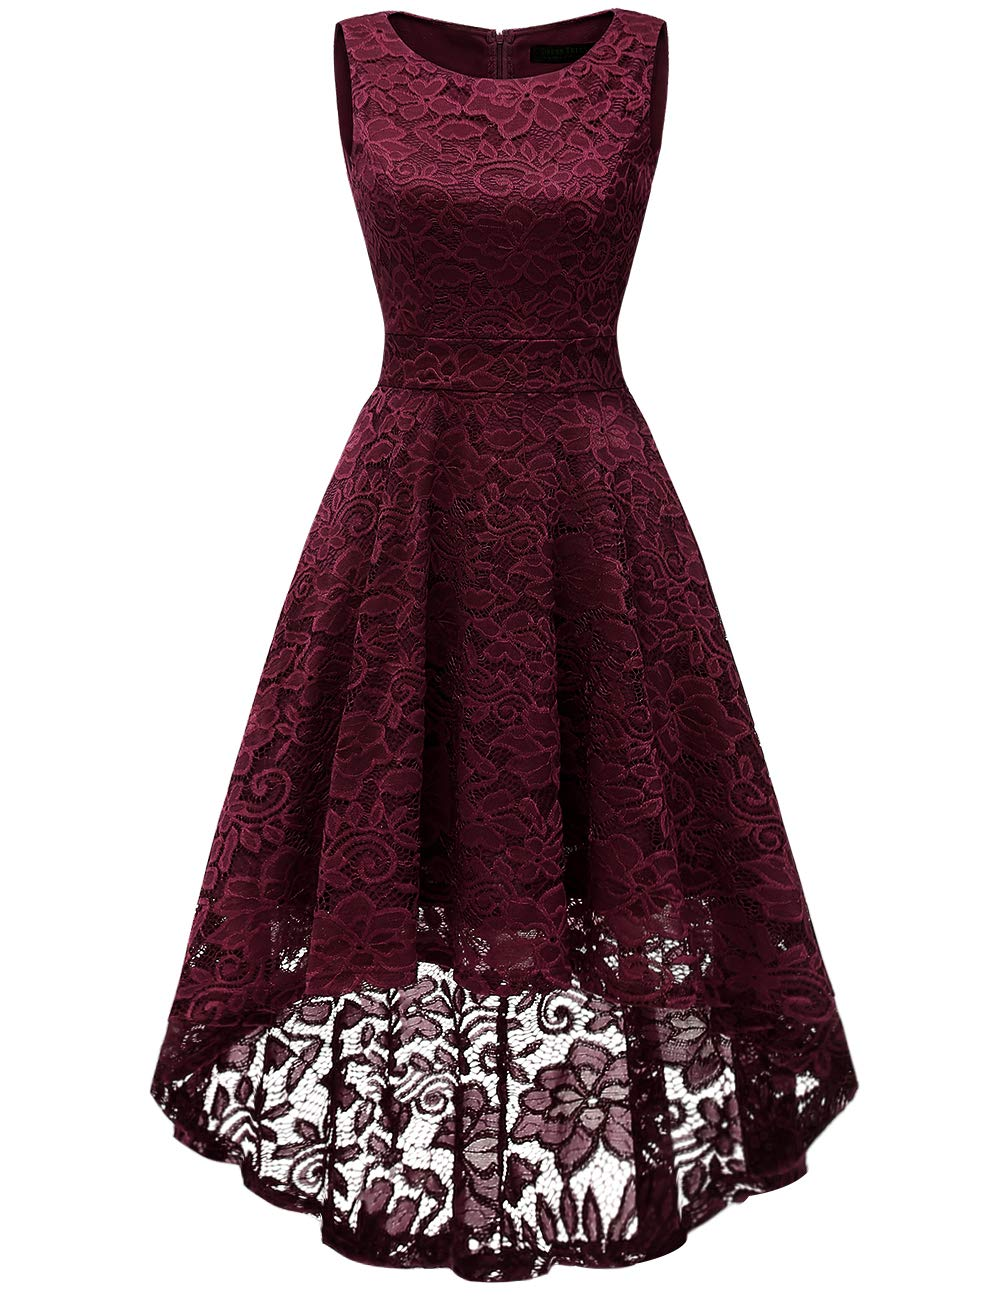 DRESSTELLS Women's Homecoming Vintage Floral Lace Hi-Lo Cocktail Formal Swing Dress Dress Burgundy S